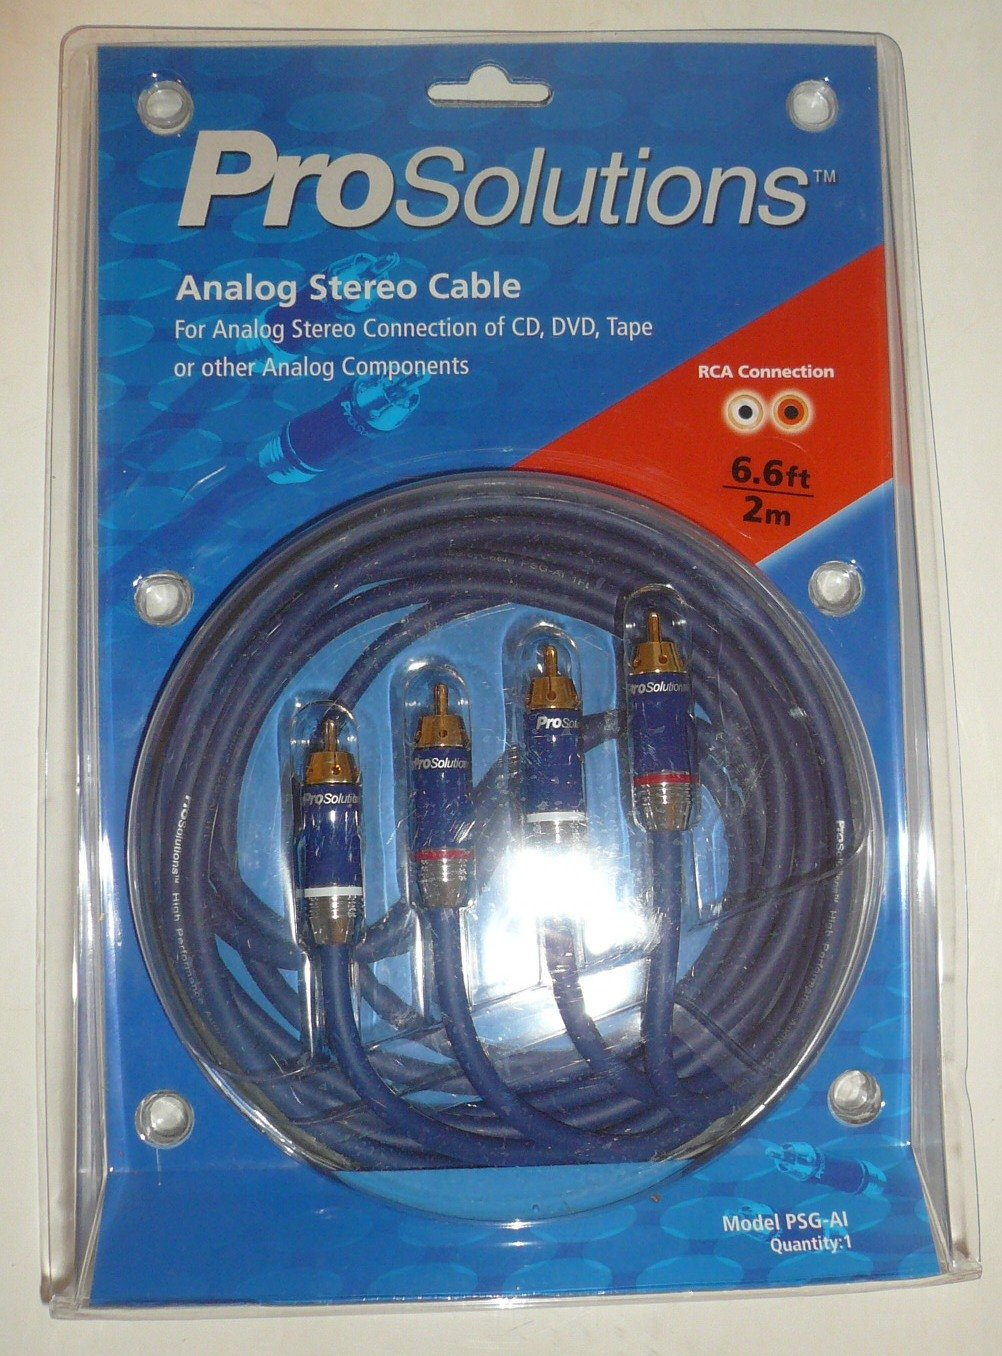 Amazon.com: Prosolutions 2m 6.6ft Analog Stereo Audio Cable - Rca ...